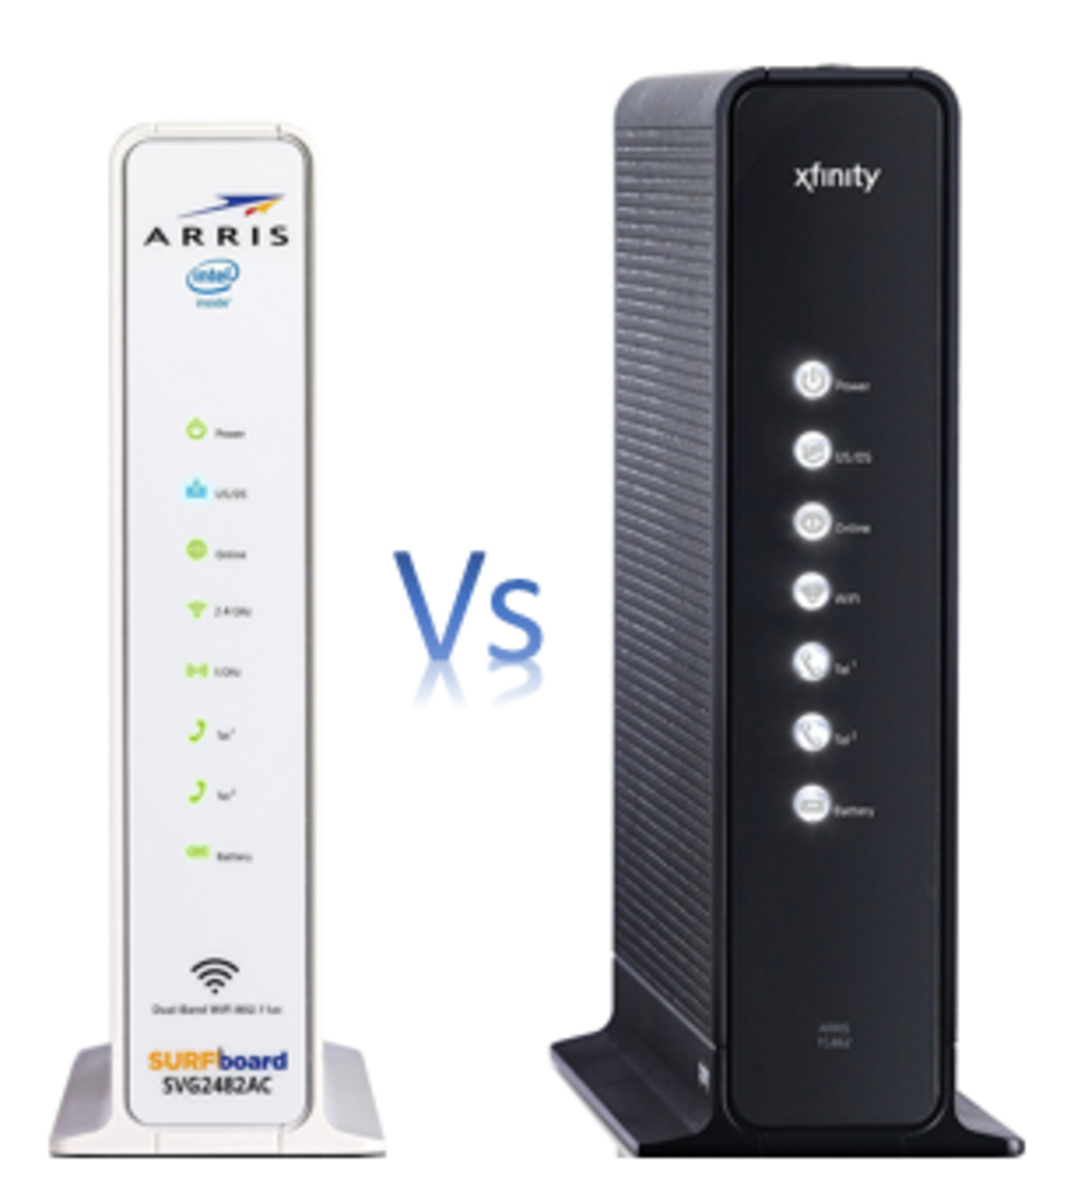 Side by side comparison of the functions and features of the Arris Surfboard SVG2482-AC and the Arris Surfboard TG862G-CT